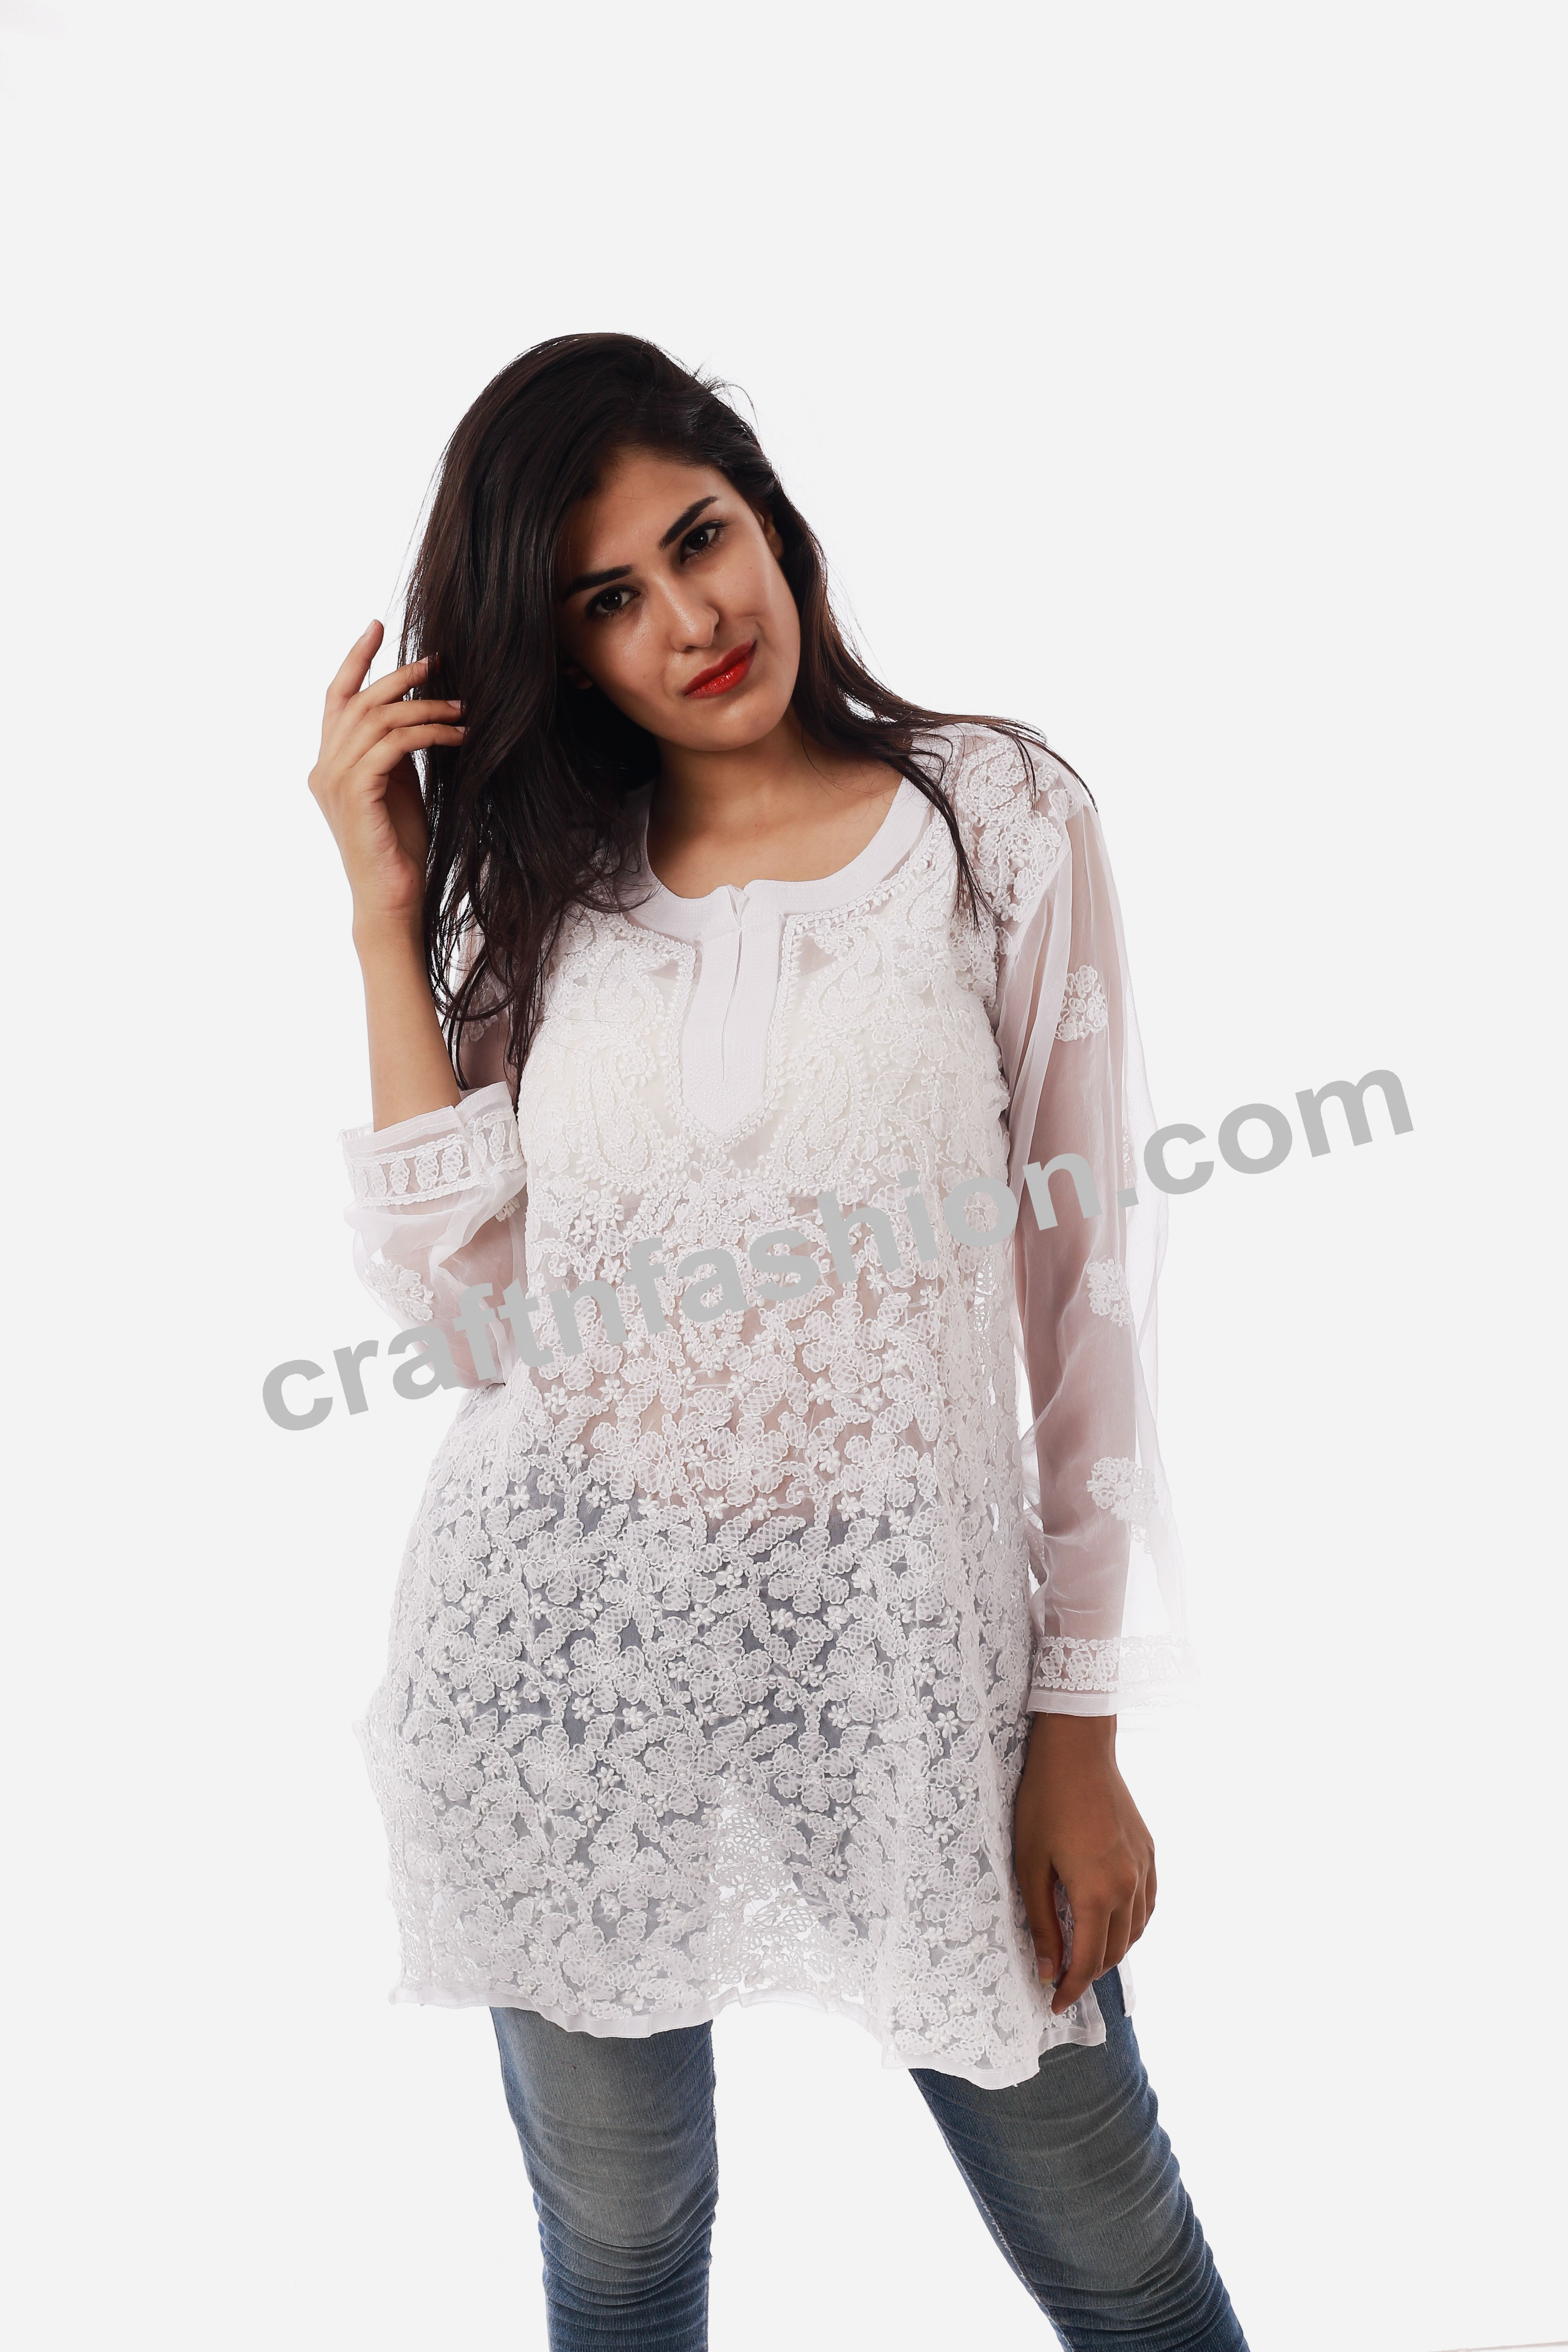 Beach Wear Party Wear White Colored Top Chikankari Dress Indian Fashion Wear Designer Lucknowi Top Chikan Embroidered Georgette Kurti